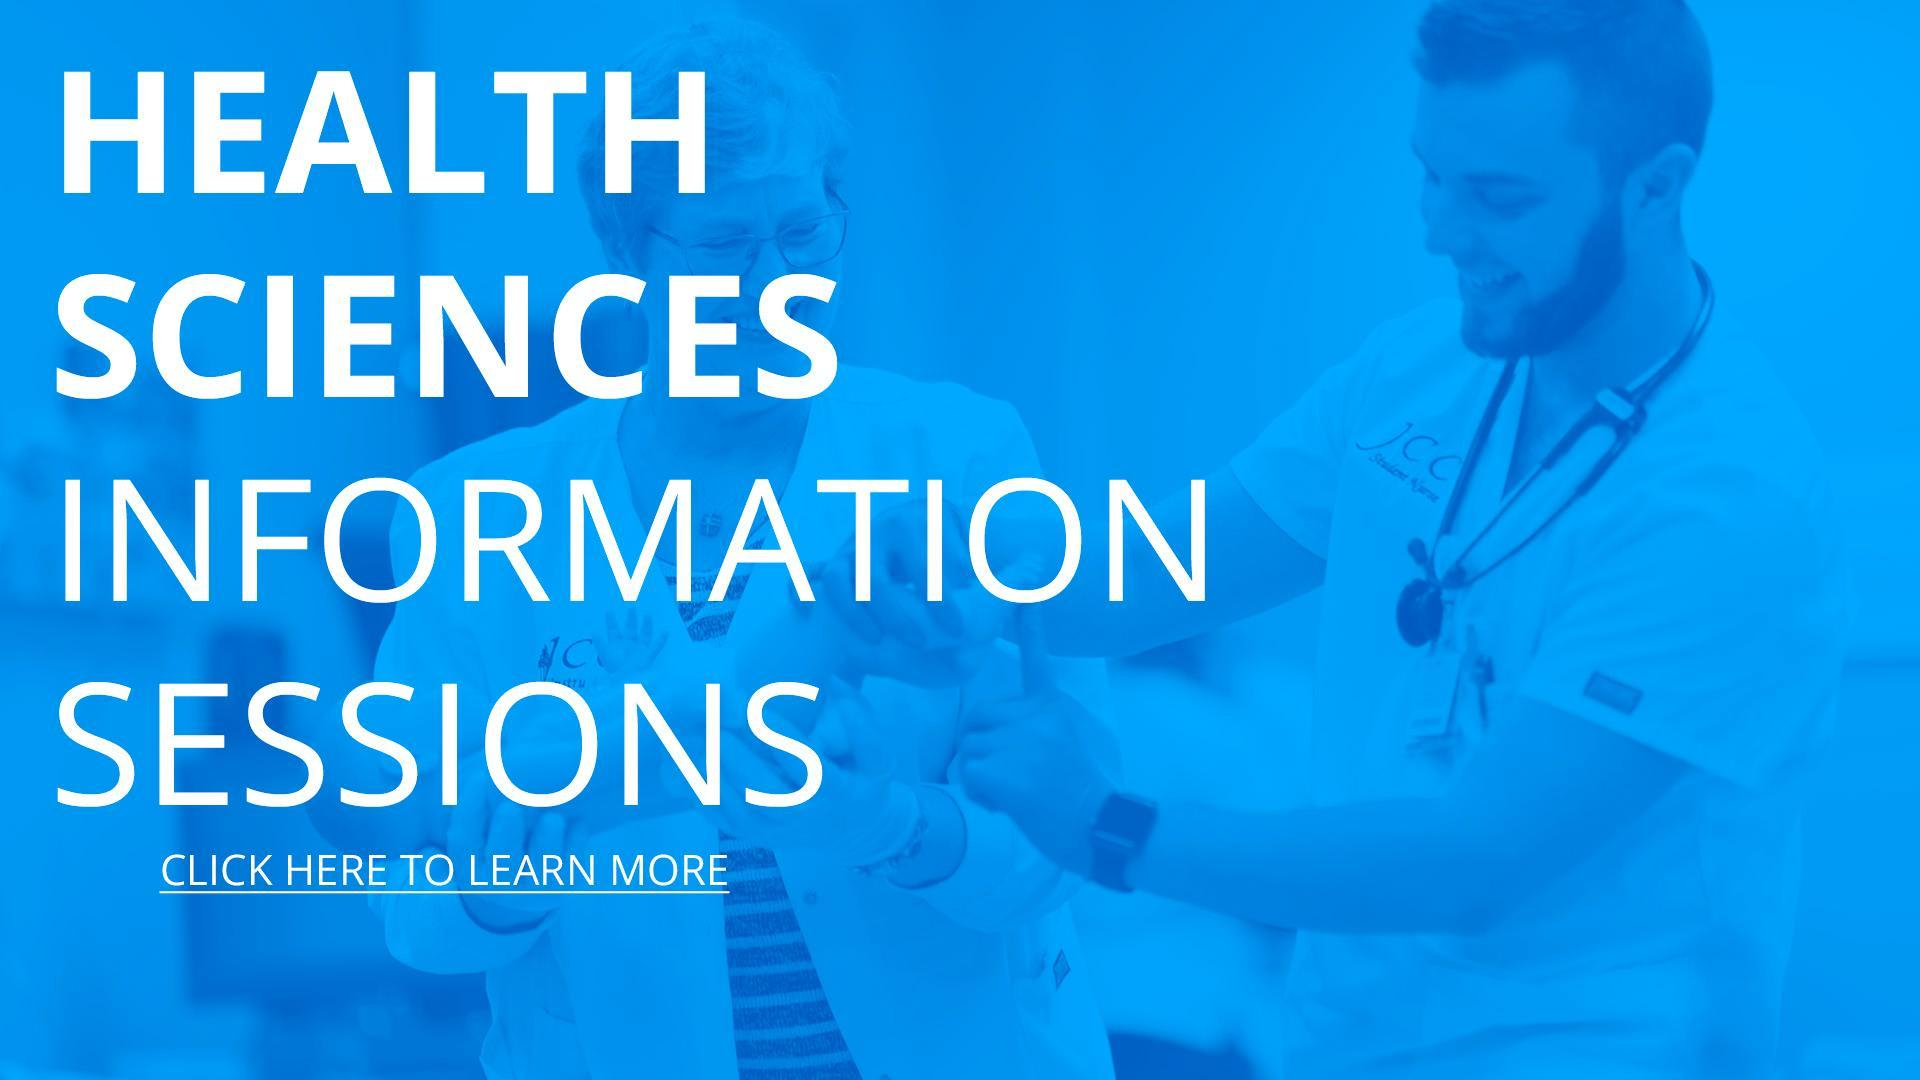 Health Sciences Information Sessions. Click here to learn more.